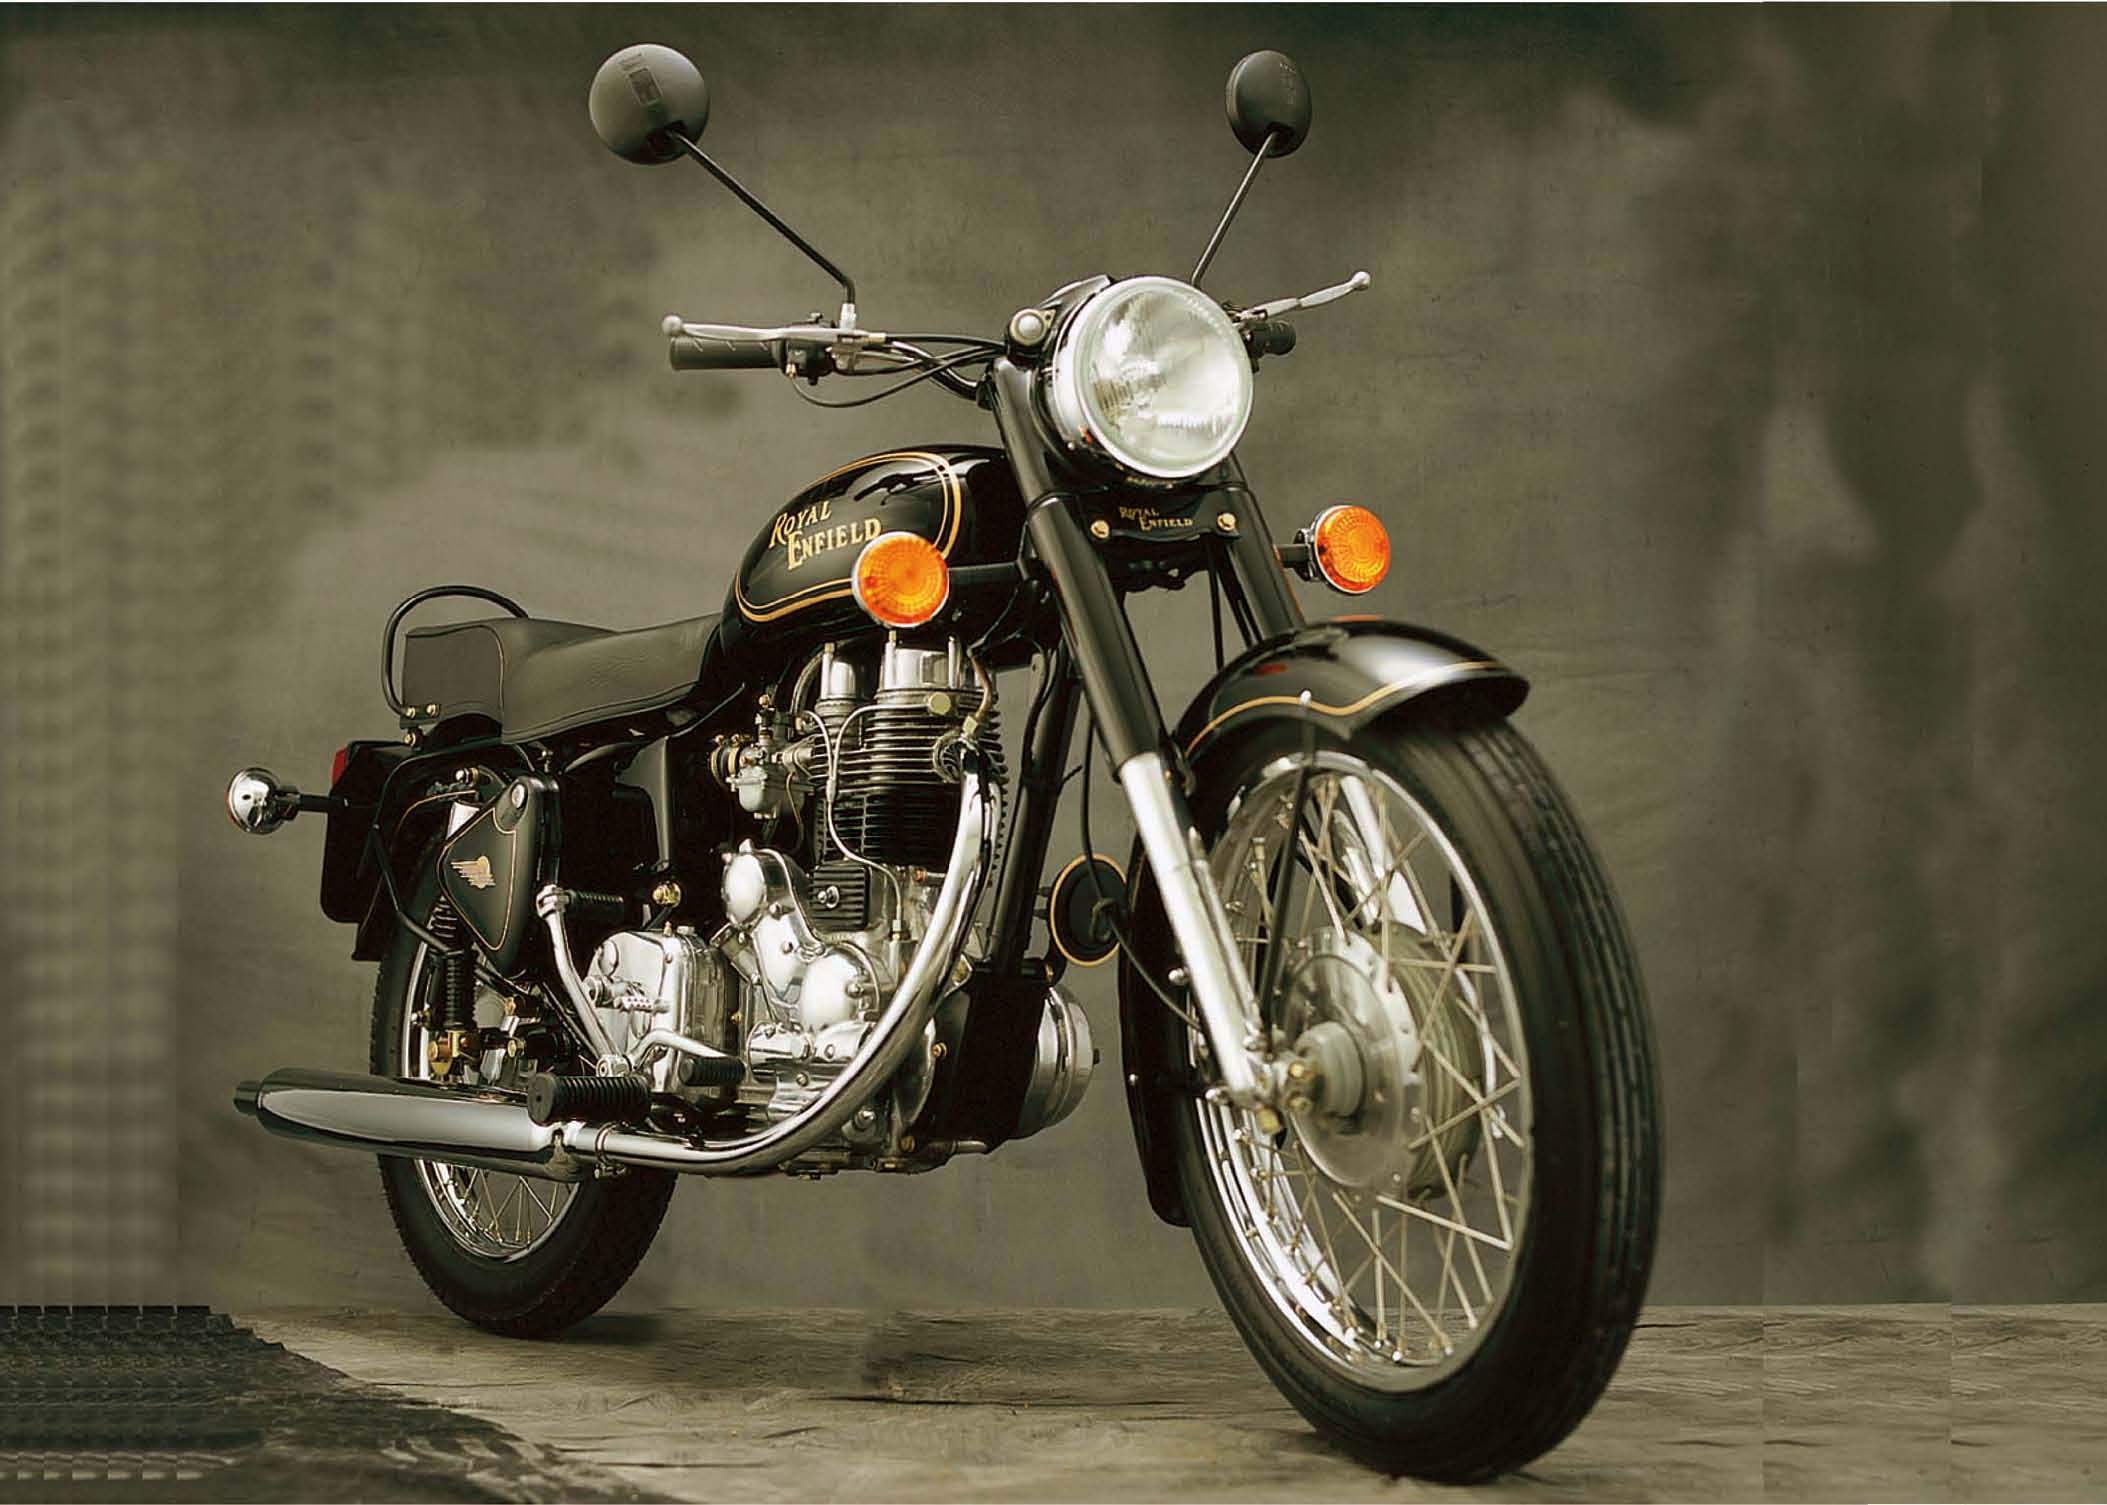 Royal Enfield Bullet 500 Army 2007 images #127492